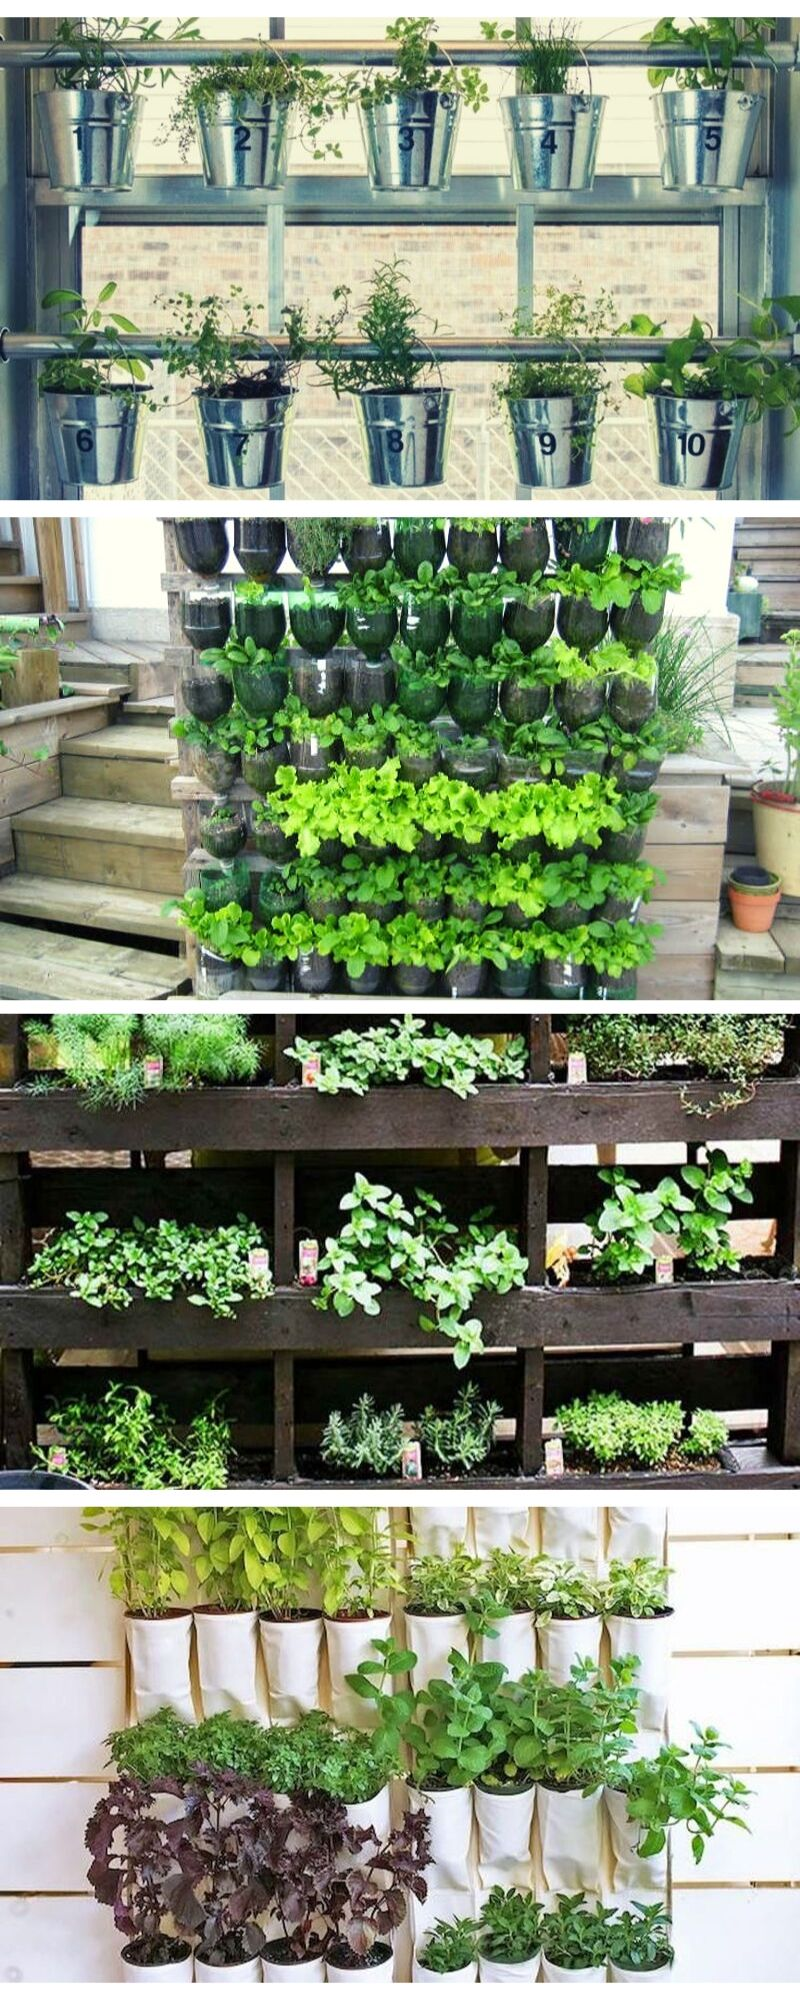 DIY Garden Ideas